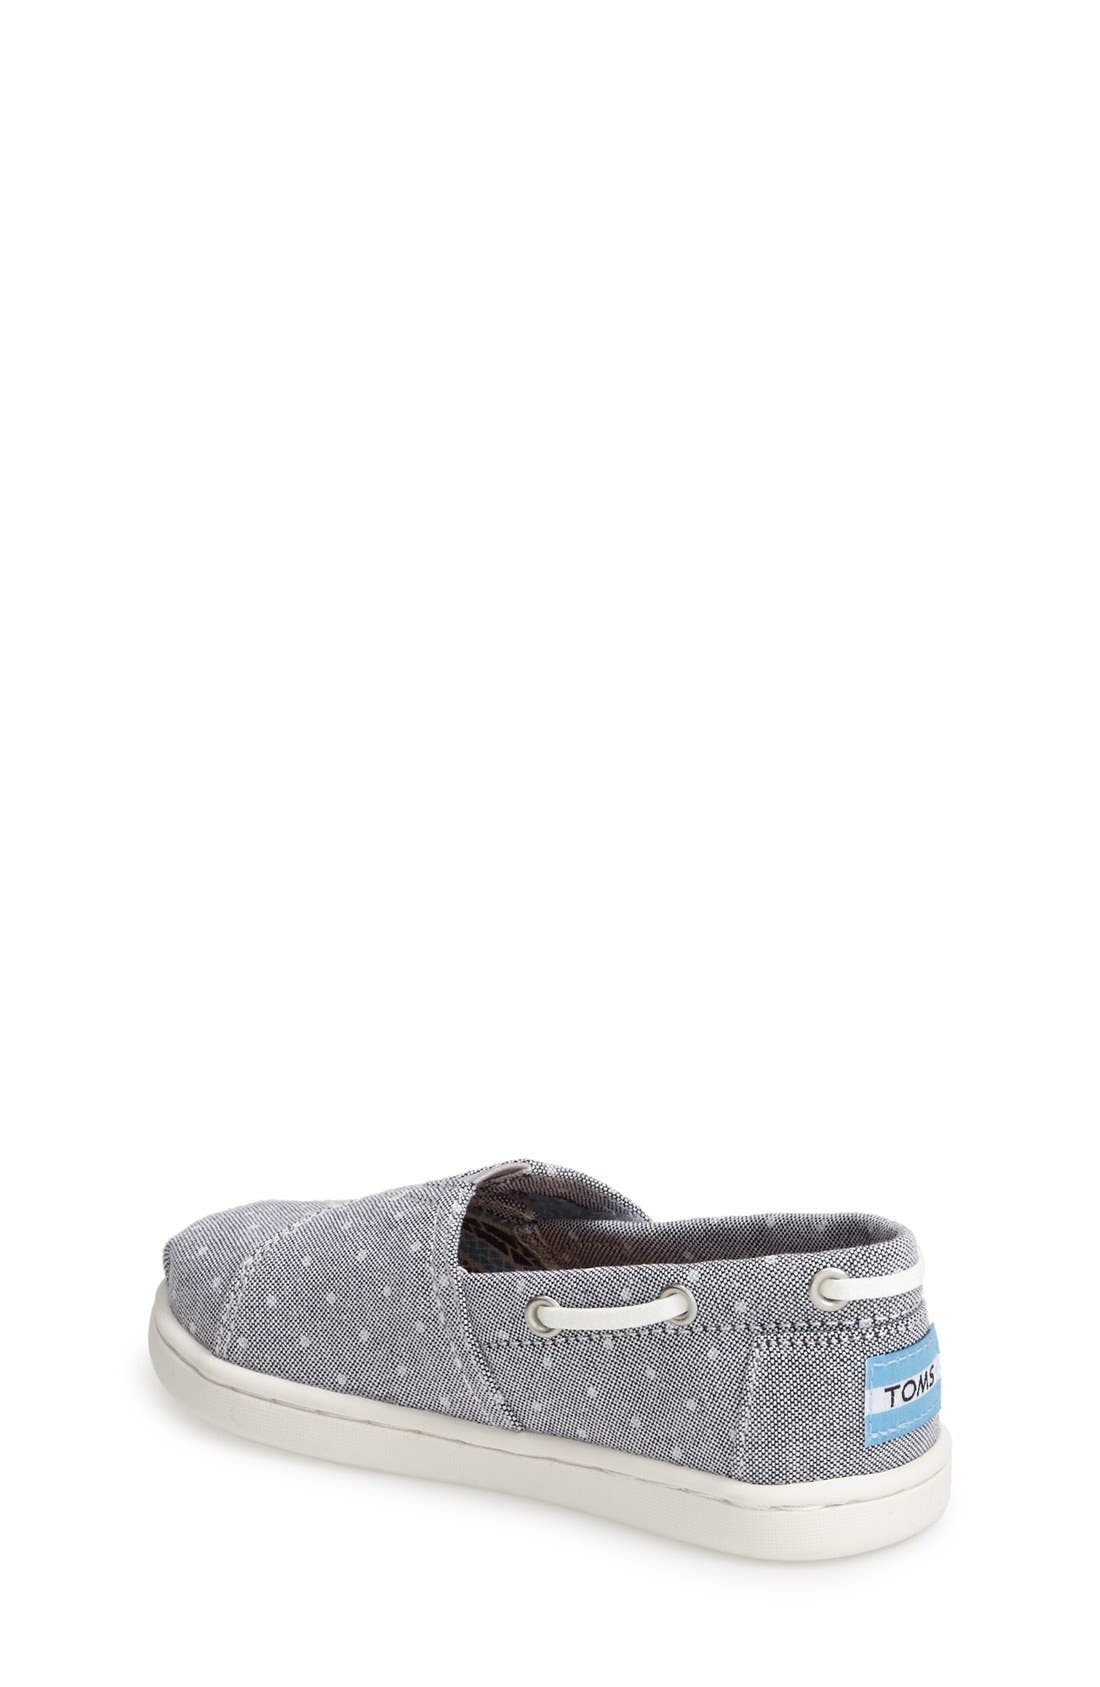 'Bimini - Tiny' Slip-On,                             Alternate thumbnail 4, color,                             Grey